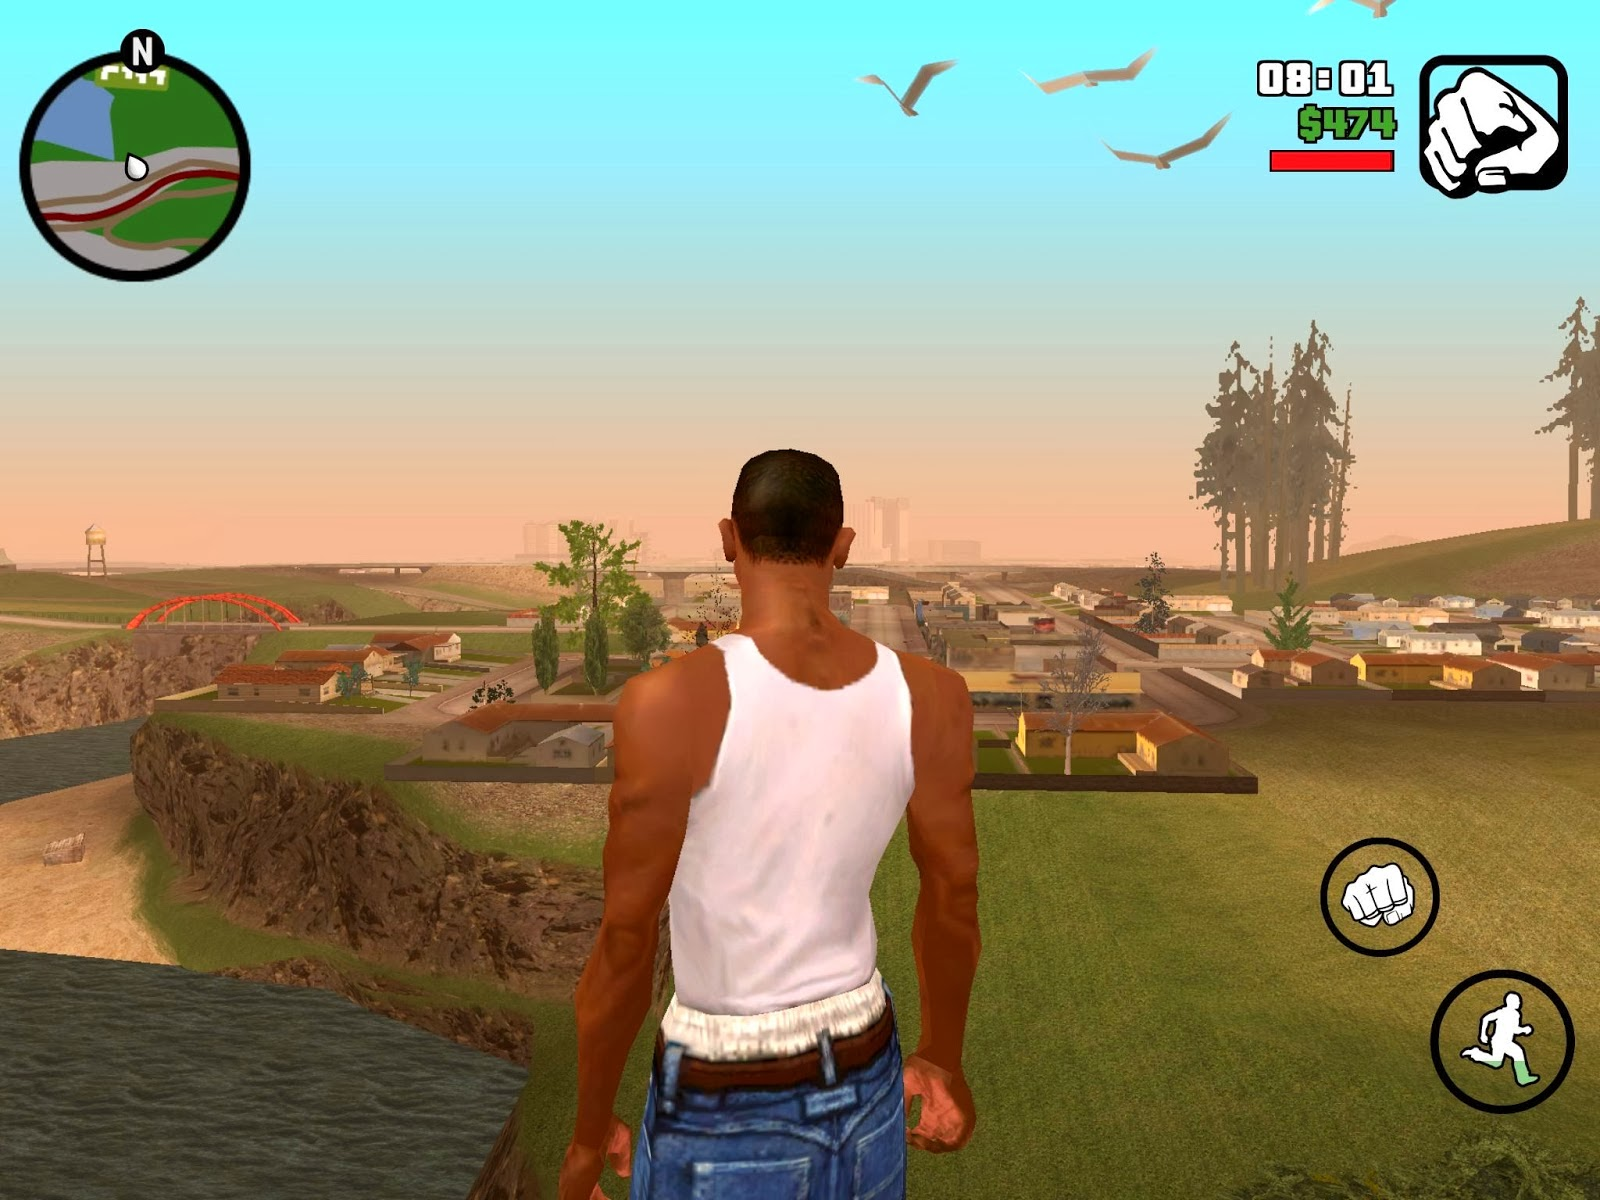 Download Game GTA San Andreas apk+data for android